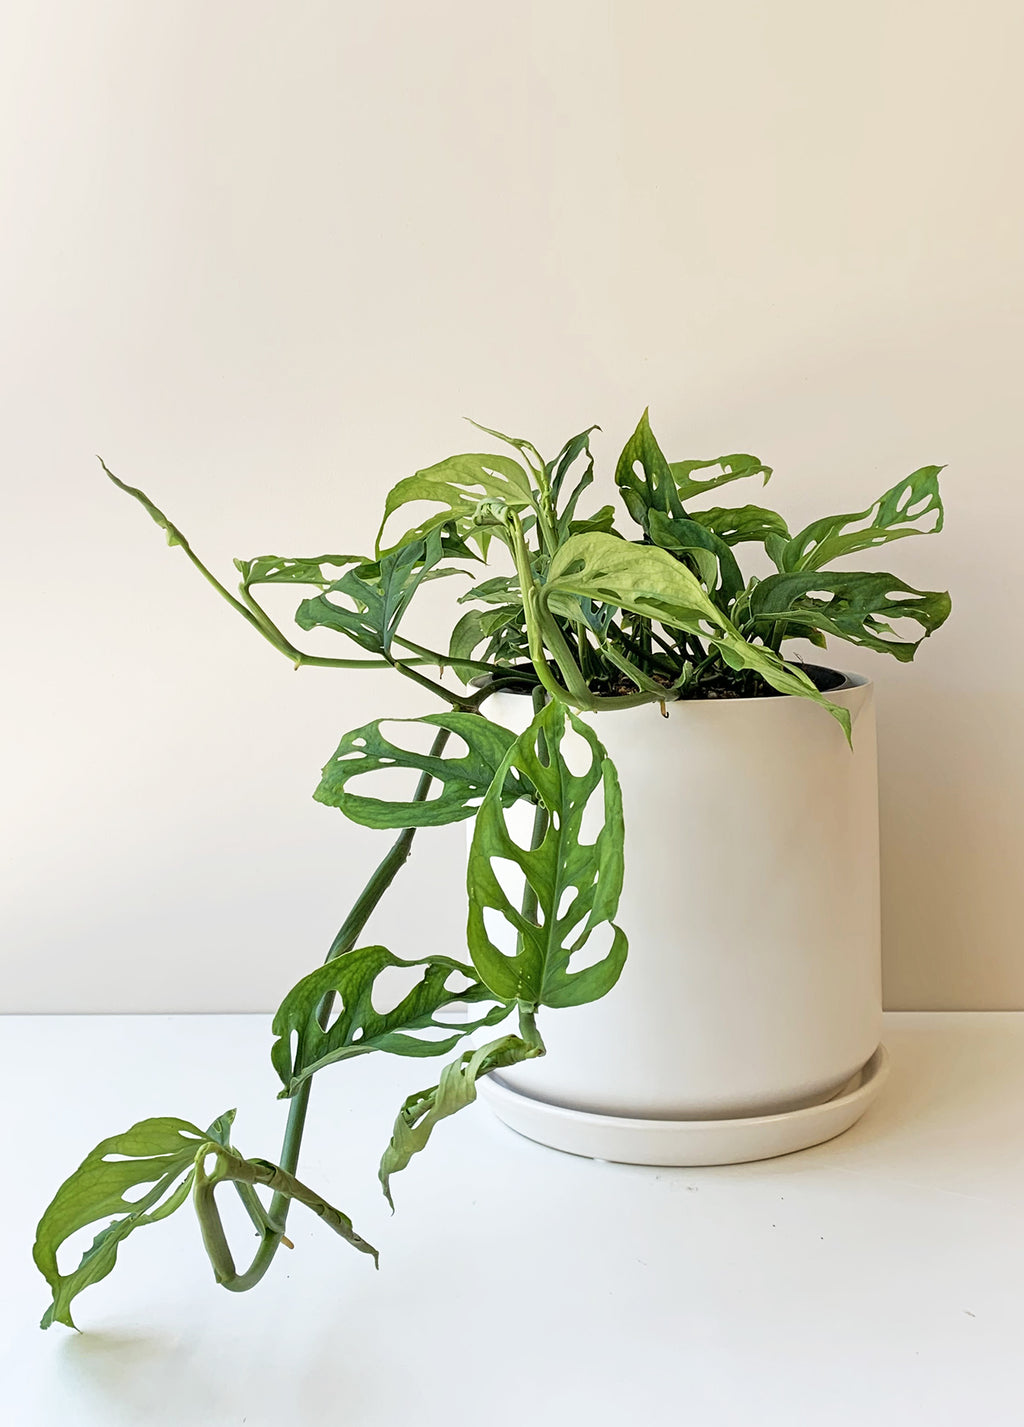 Monstera - Swiss Cheese Vine